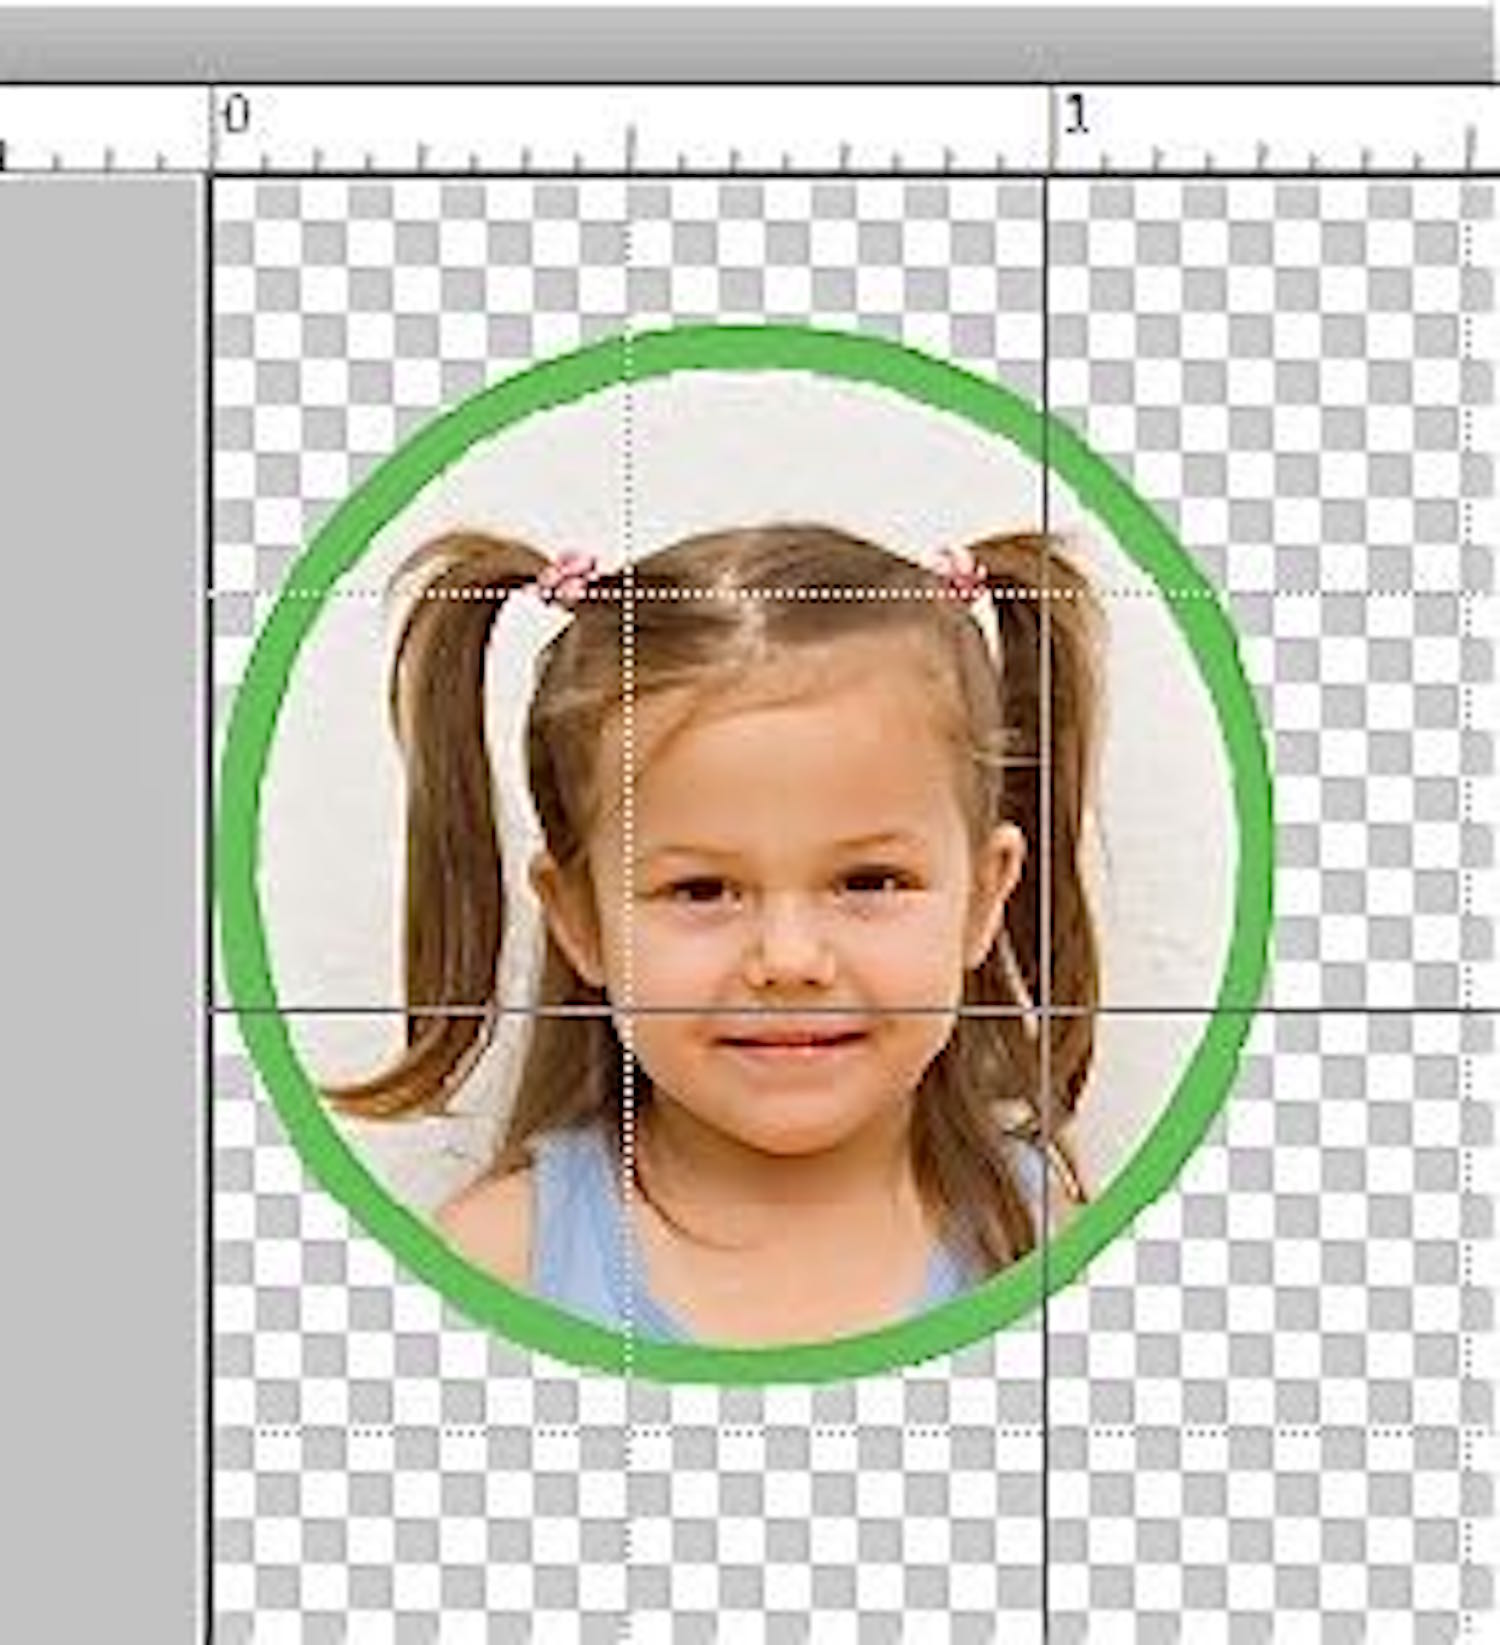 """step 13 - On your computer, bring the faces for your pillow into a photo manipulation program like Photoshop Elements. Reduce or enlarge the image to 1.25"""". Create a green round border to contain the image and add more color to the finished pillow. Reverse the image and print it onto the shiny side of the film."""